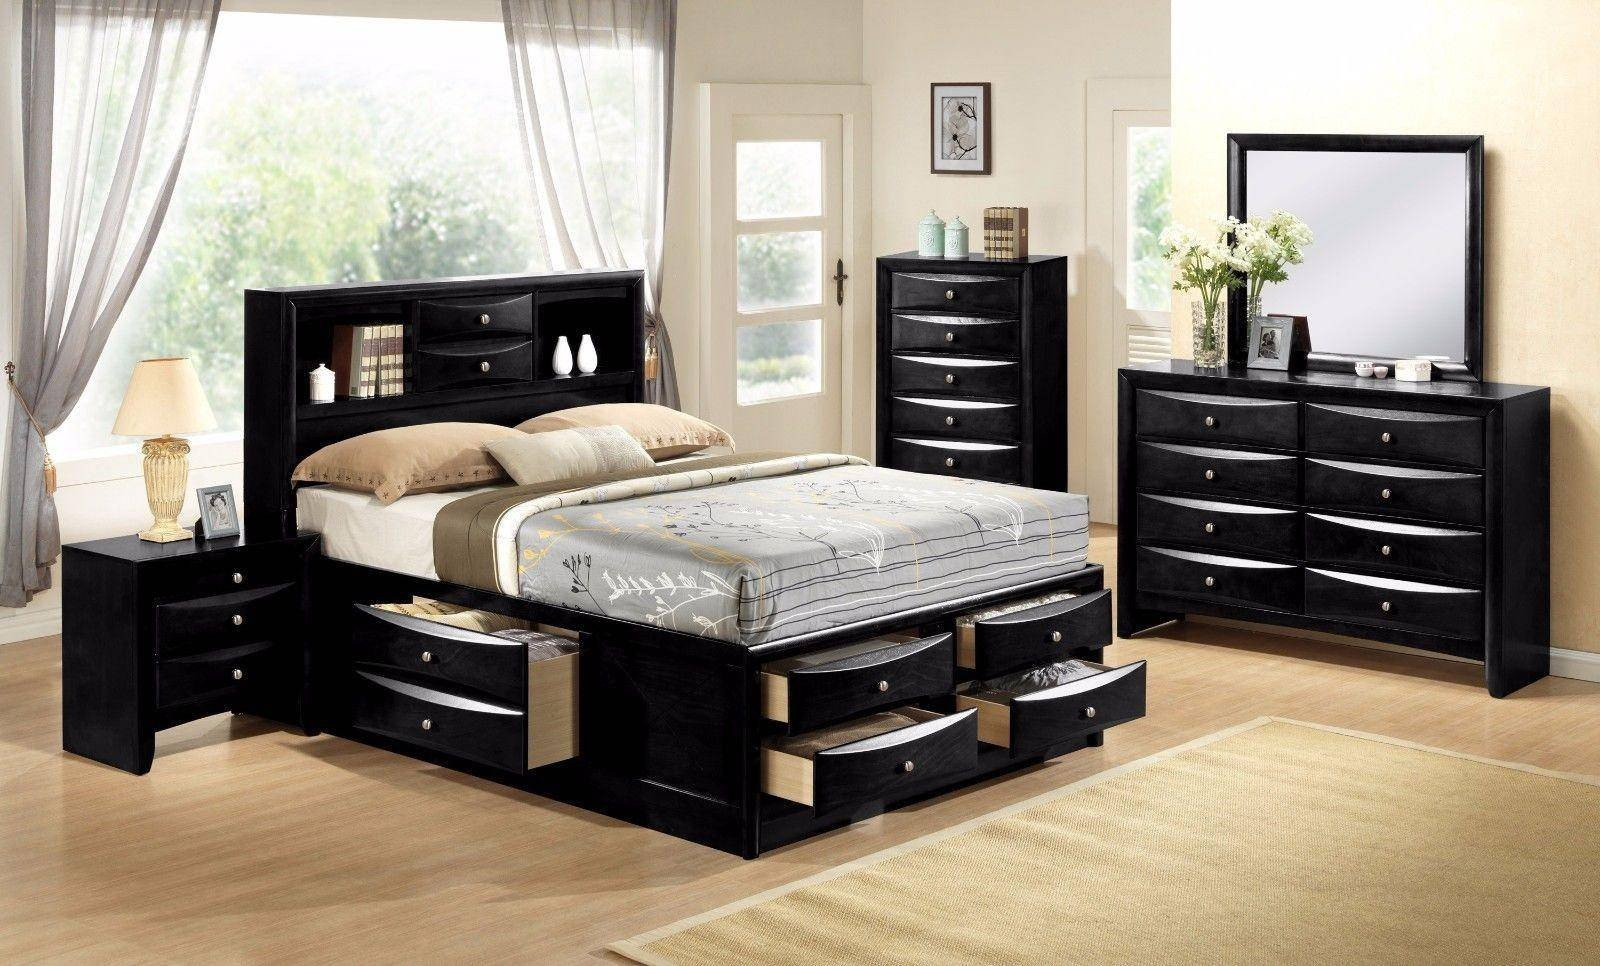 King Bedroom Set for Sale Inspirational Crown Mark B4285 Emily Modern Black Finish Storage King Size